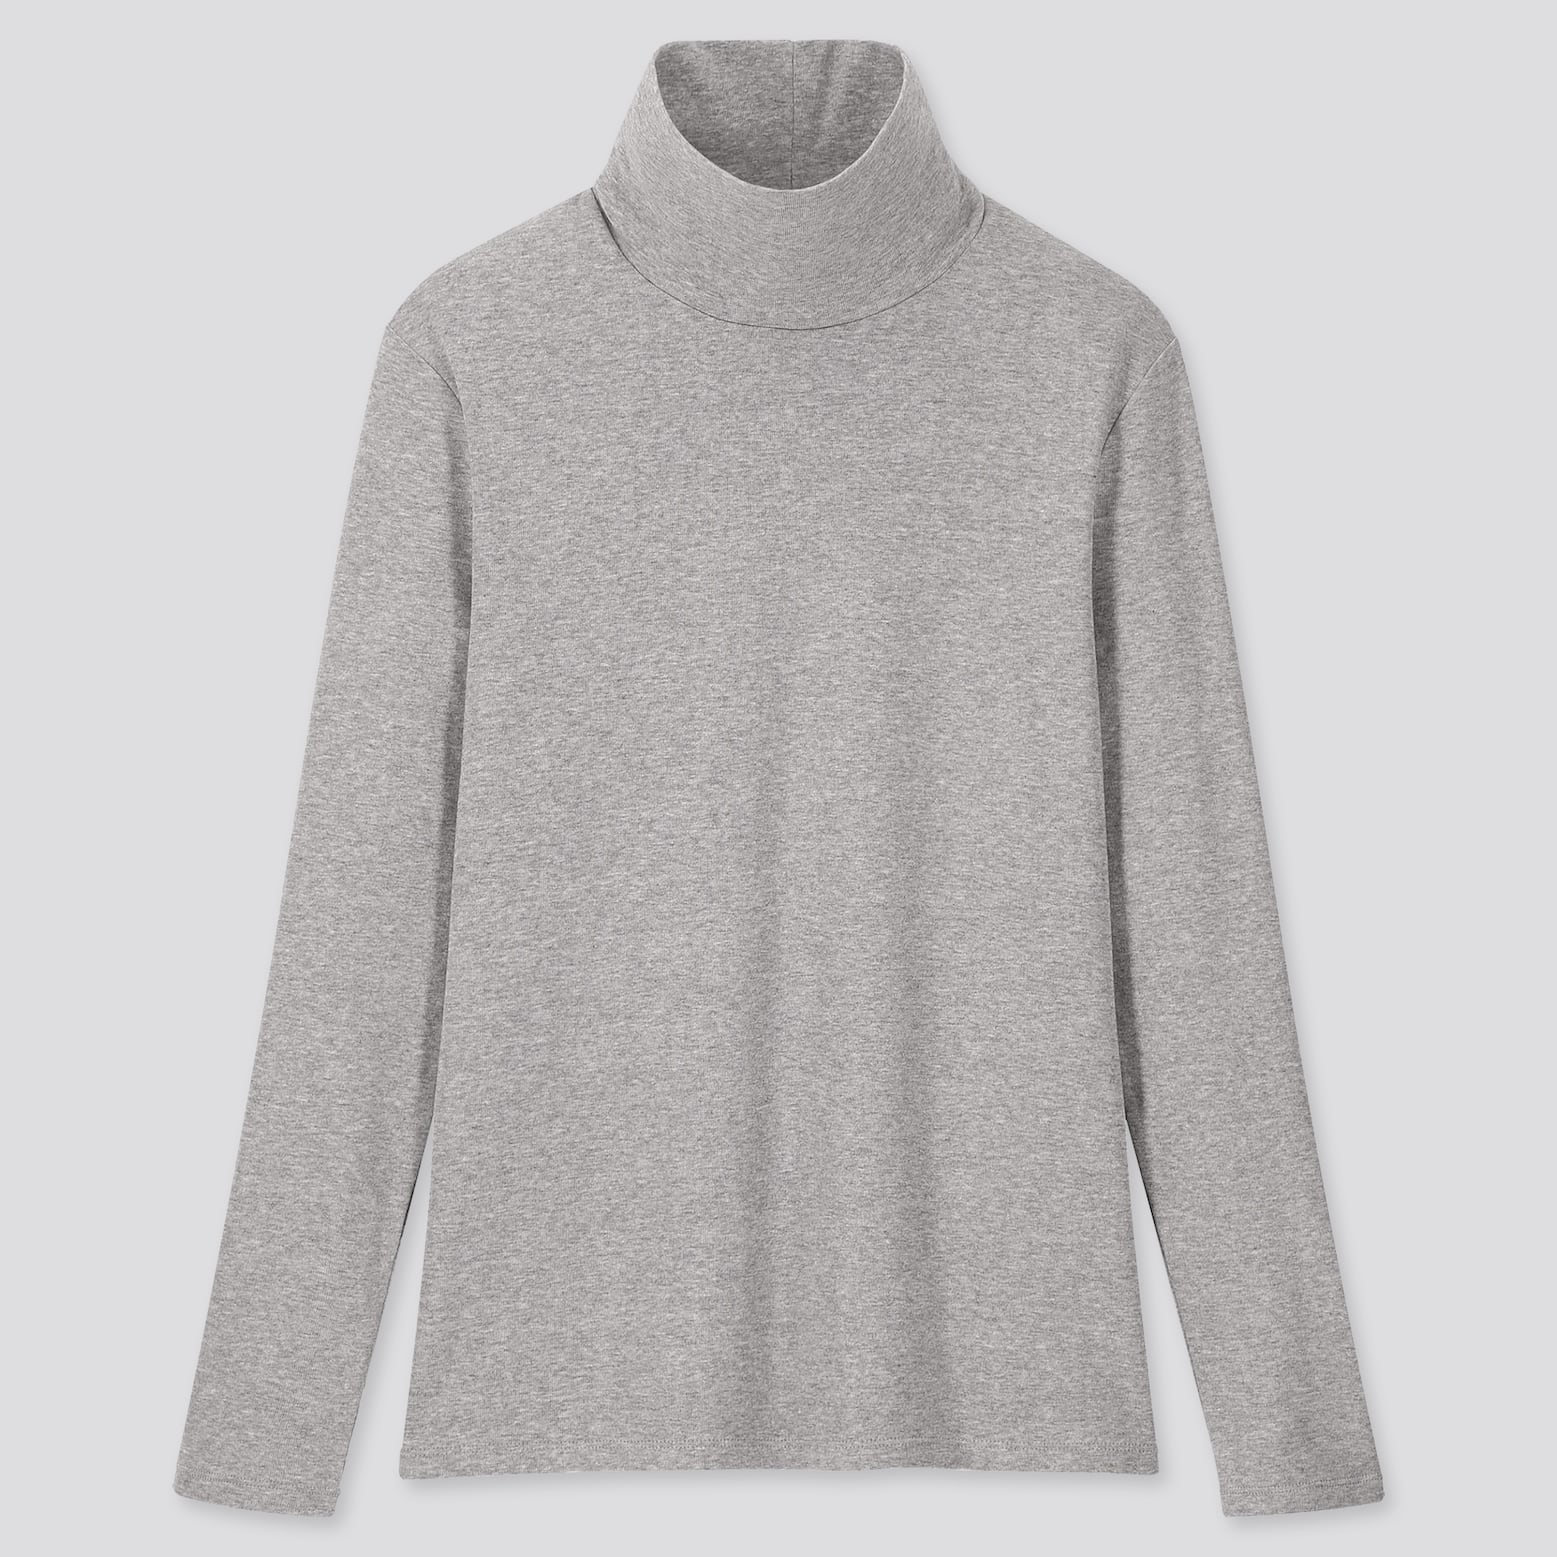 1*1 Ribbed Cotton Turtleneck Long Sleeve T Shirt by Uniqlo